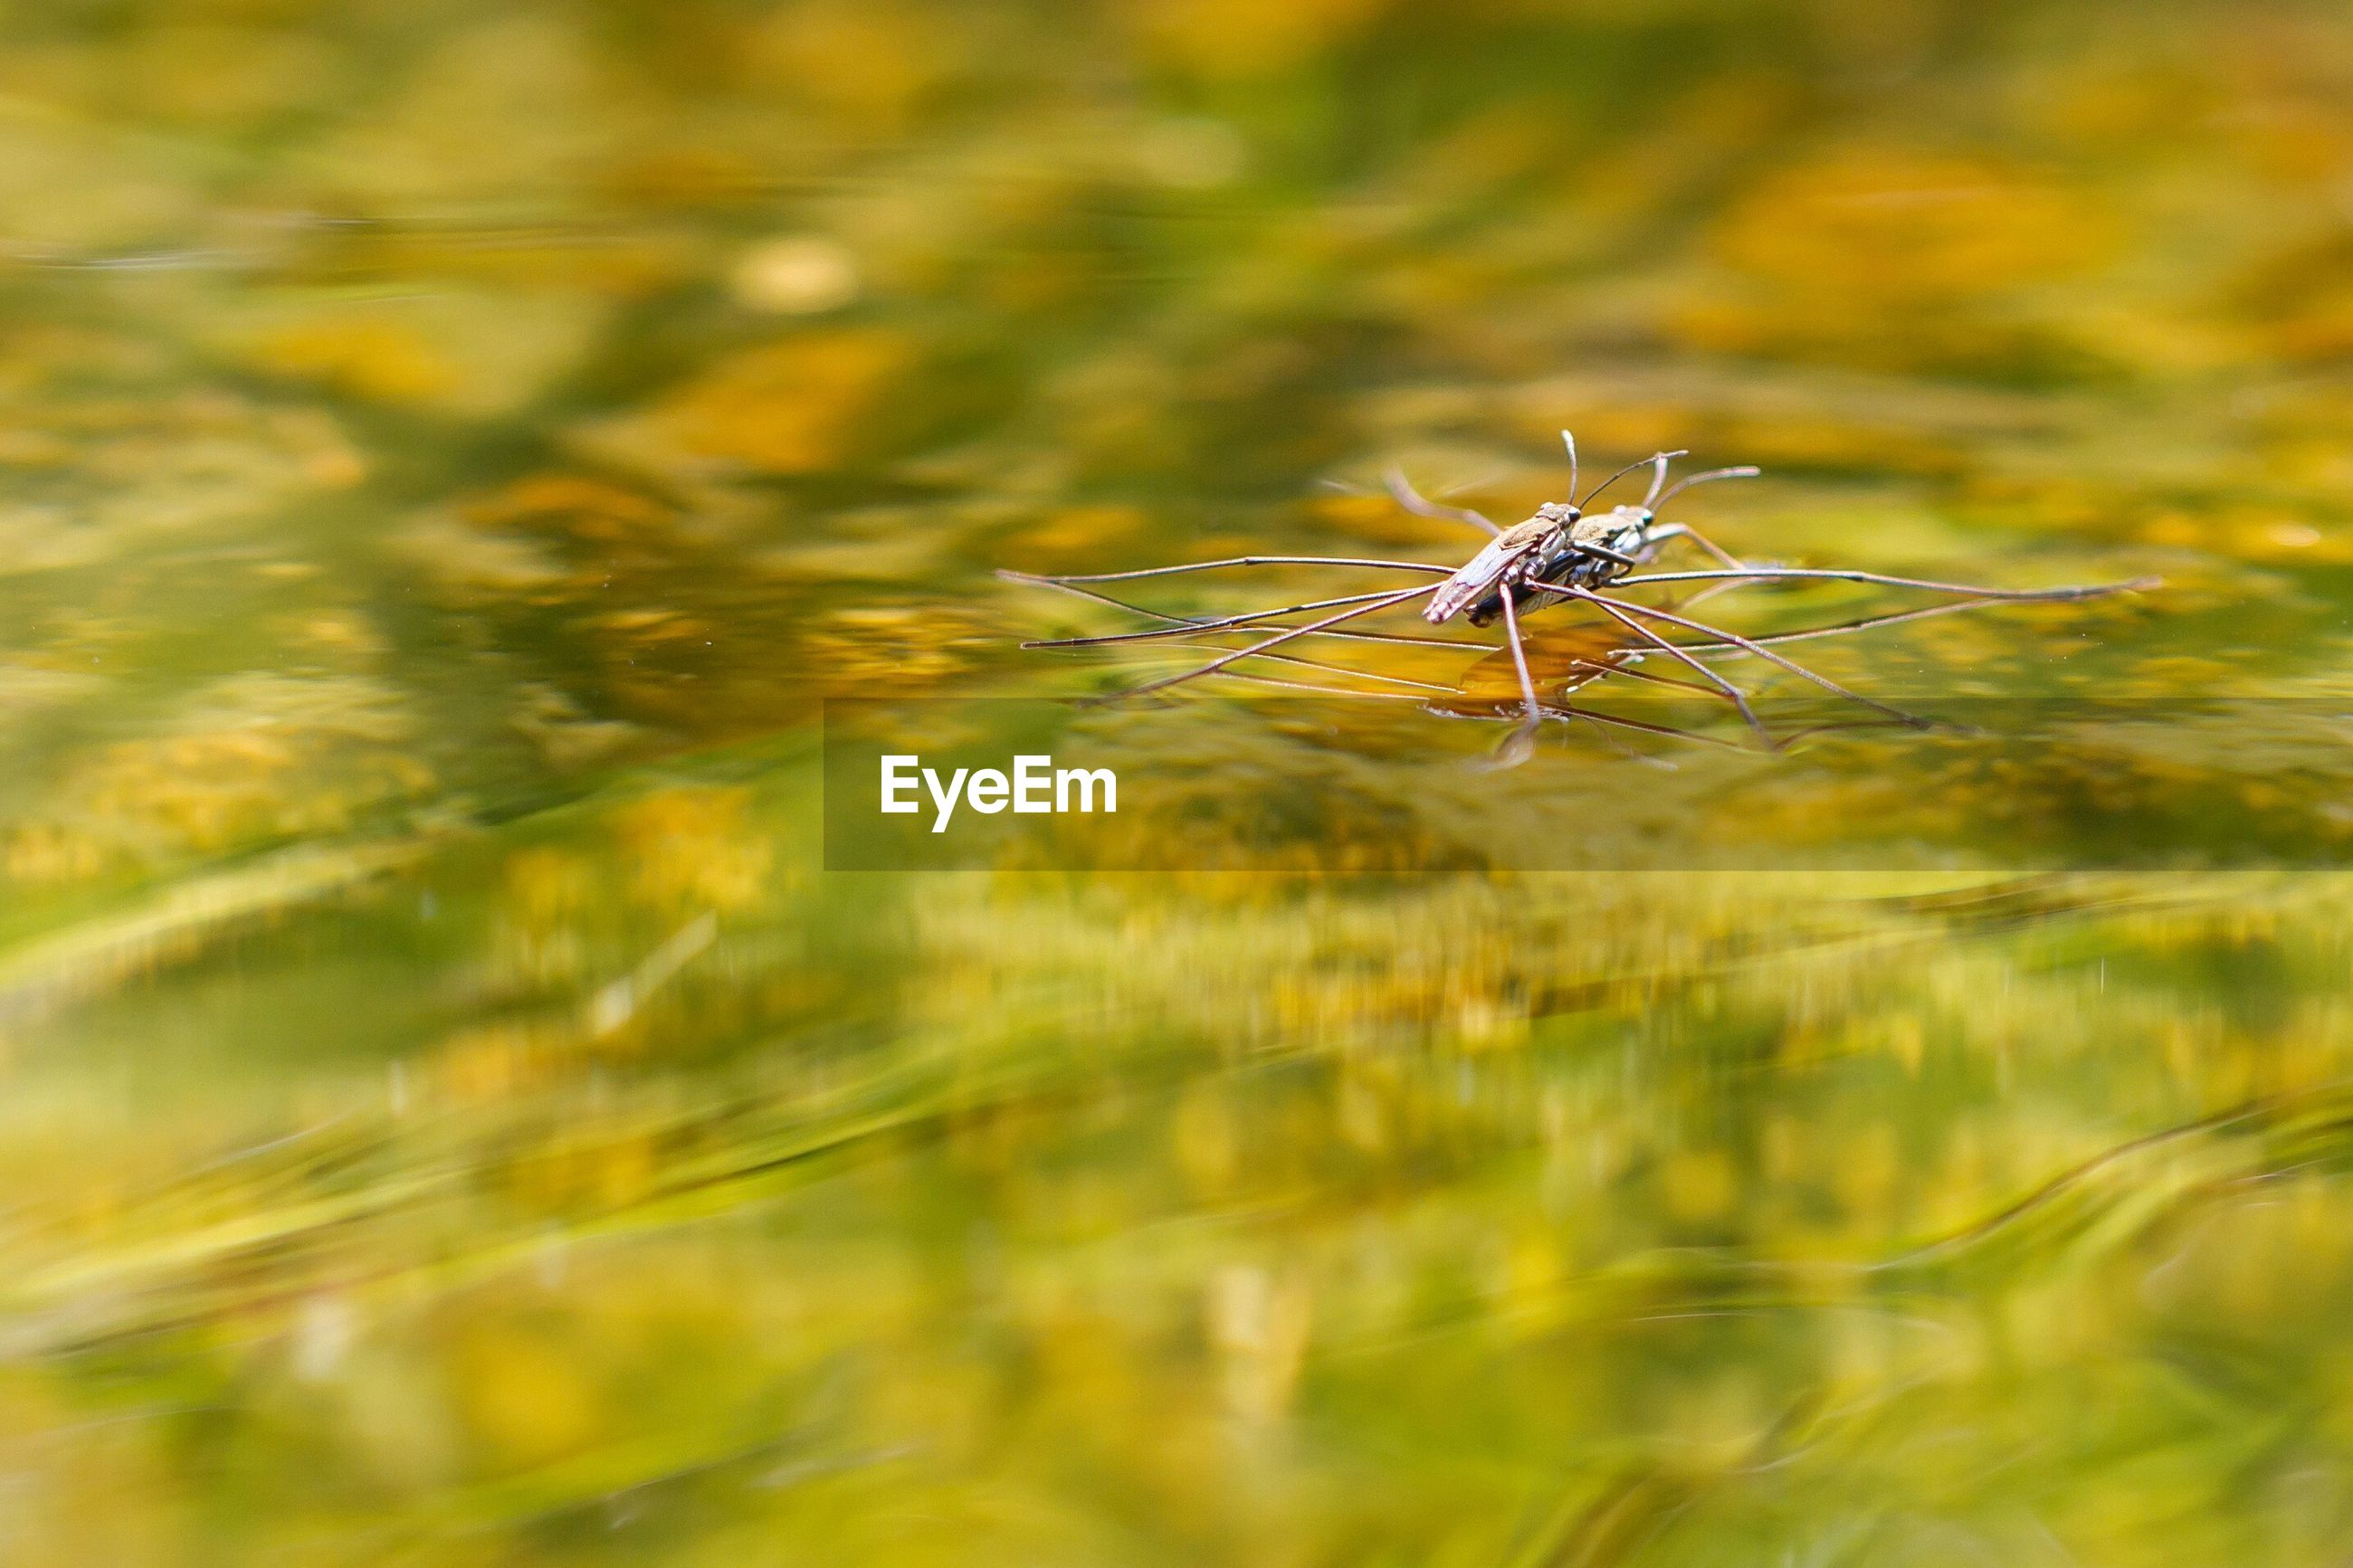 Two insects copulating on water surface